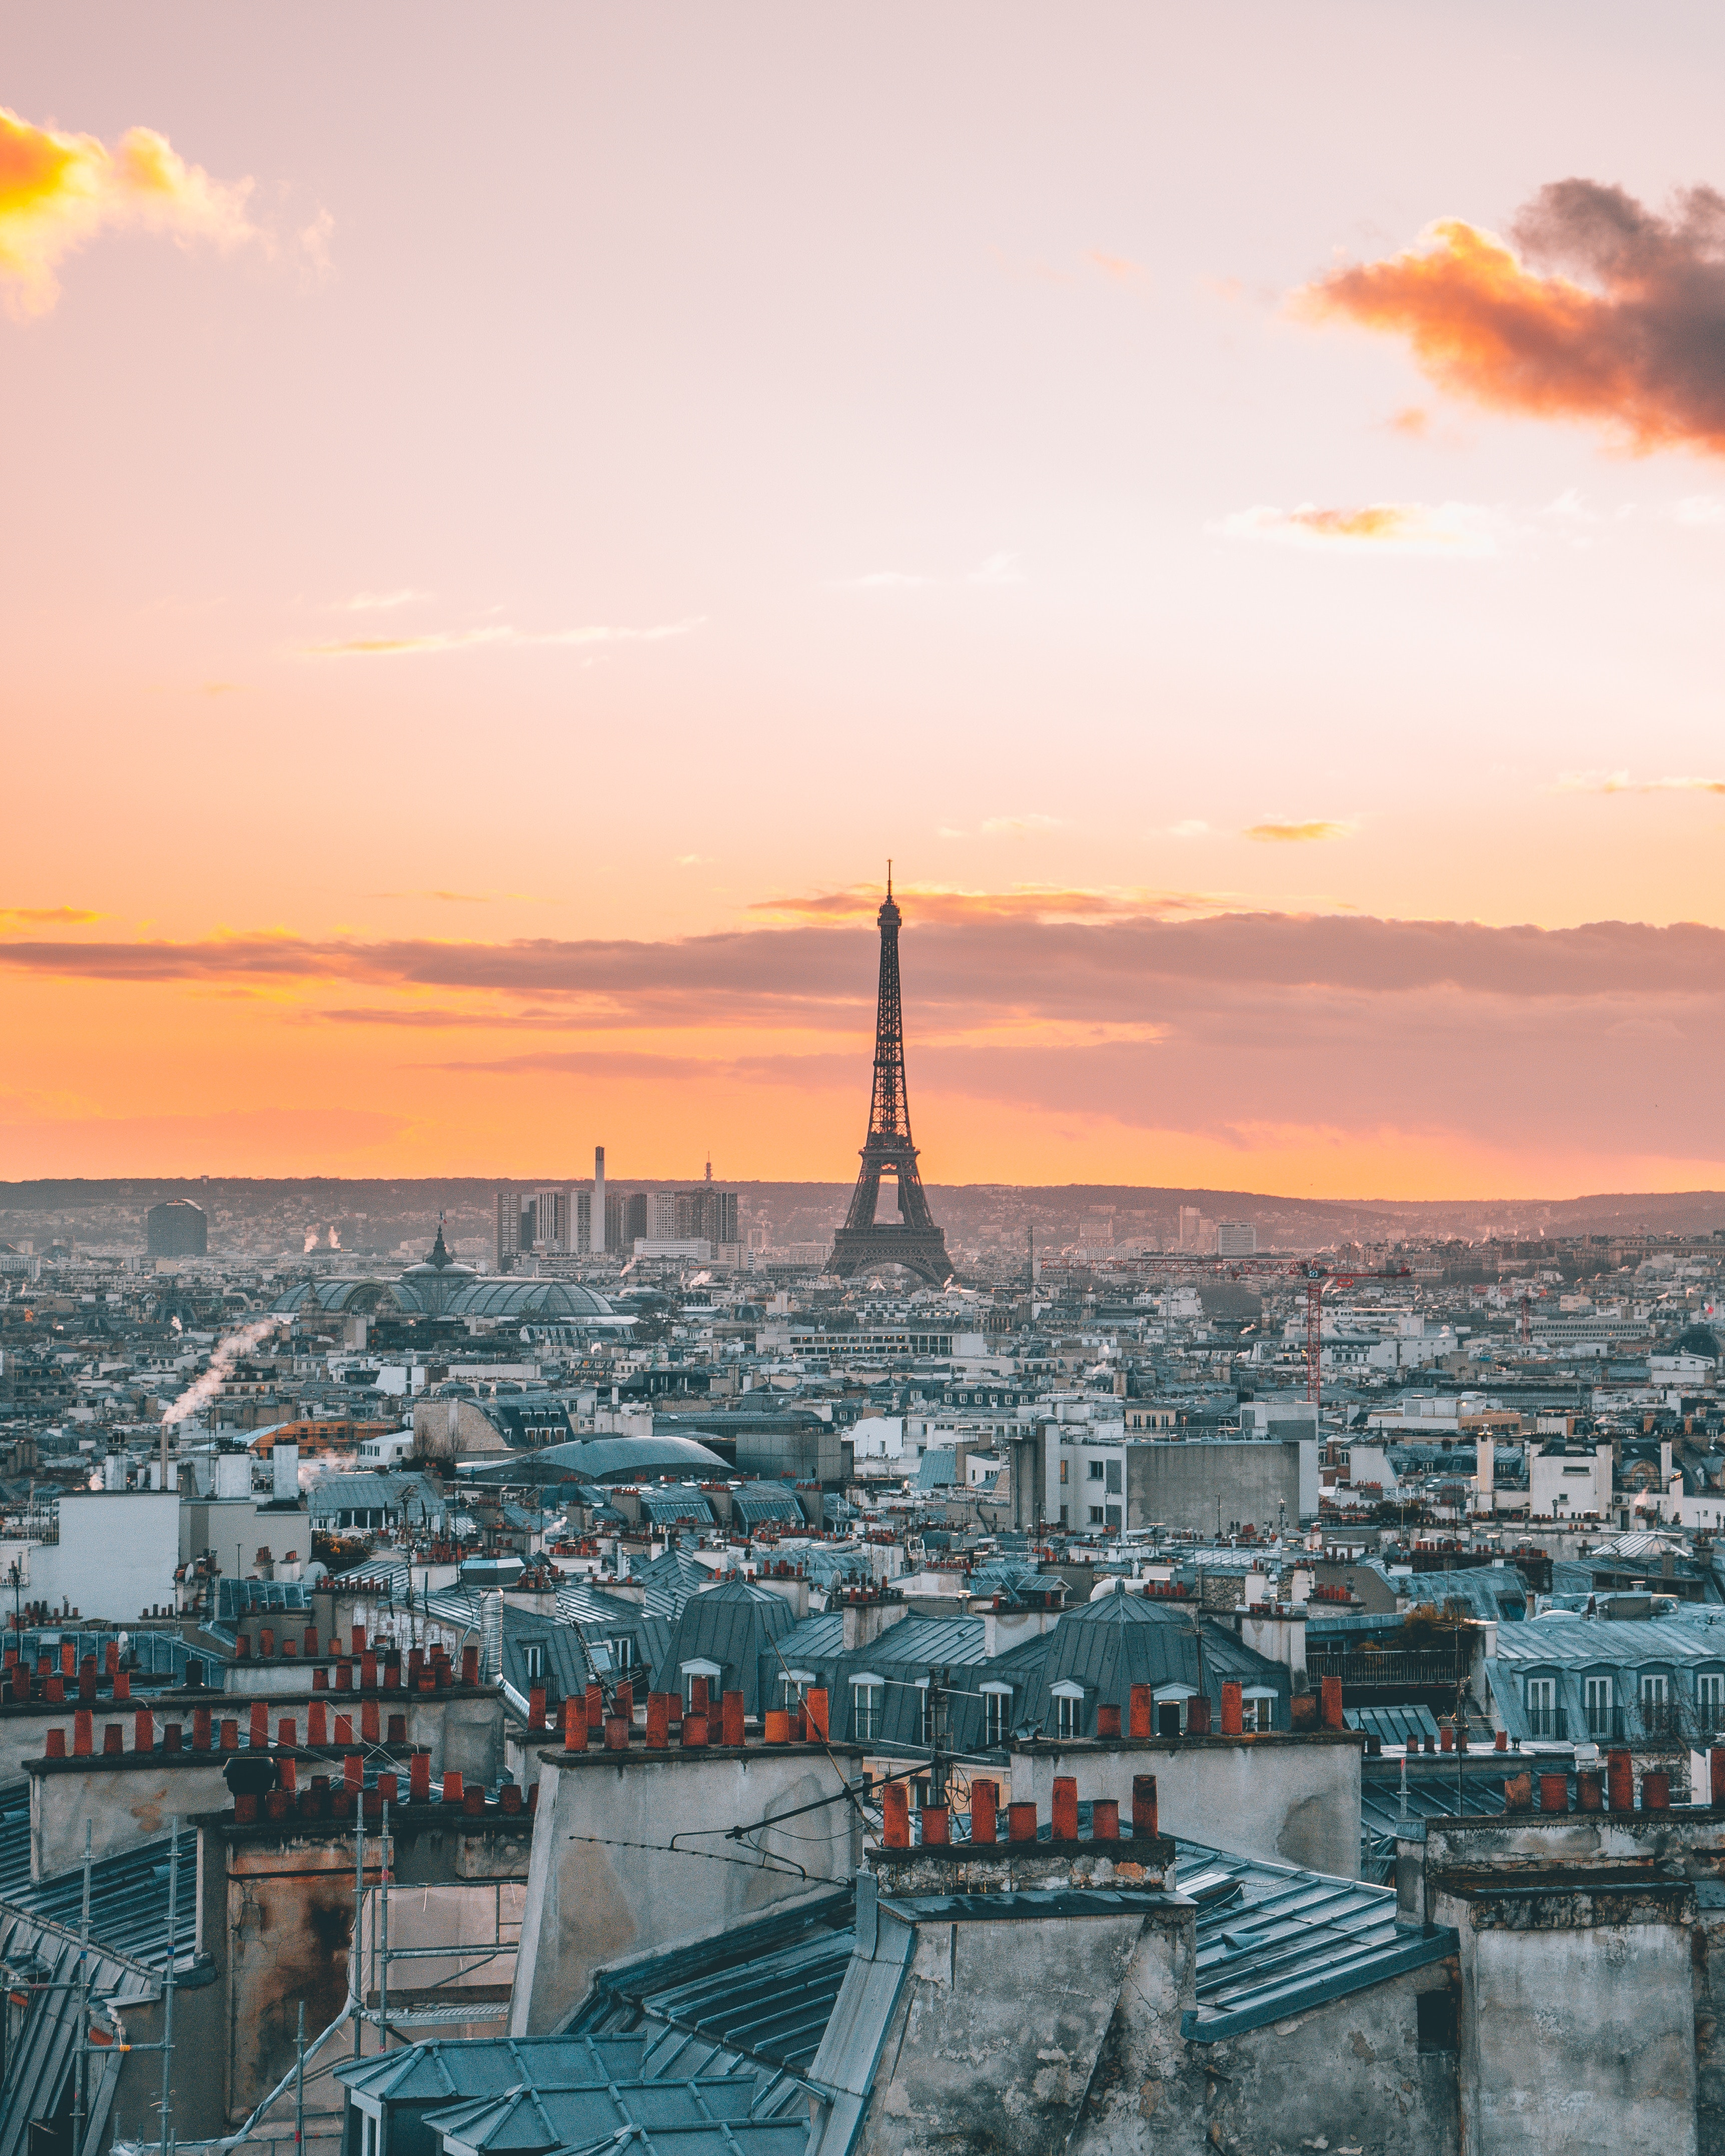 paris-pollution-going-carless-electric-environmental-safety